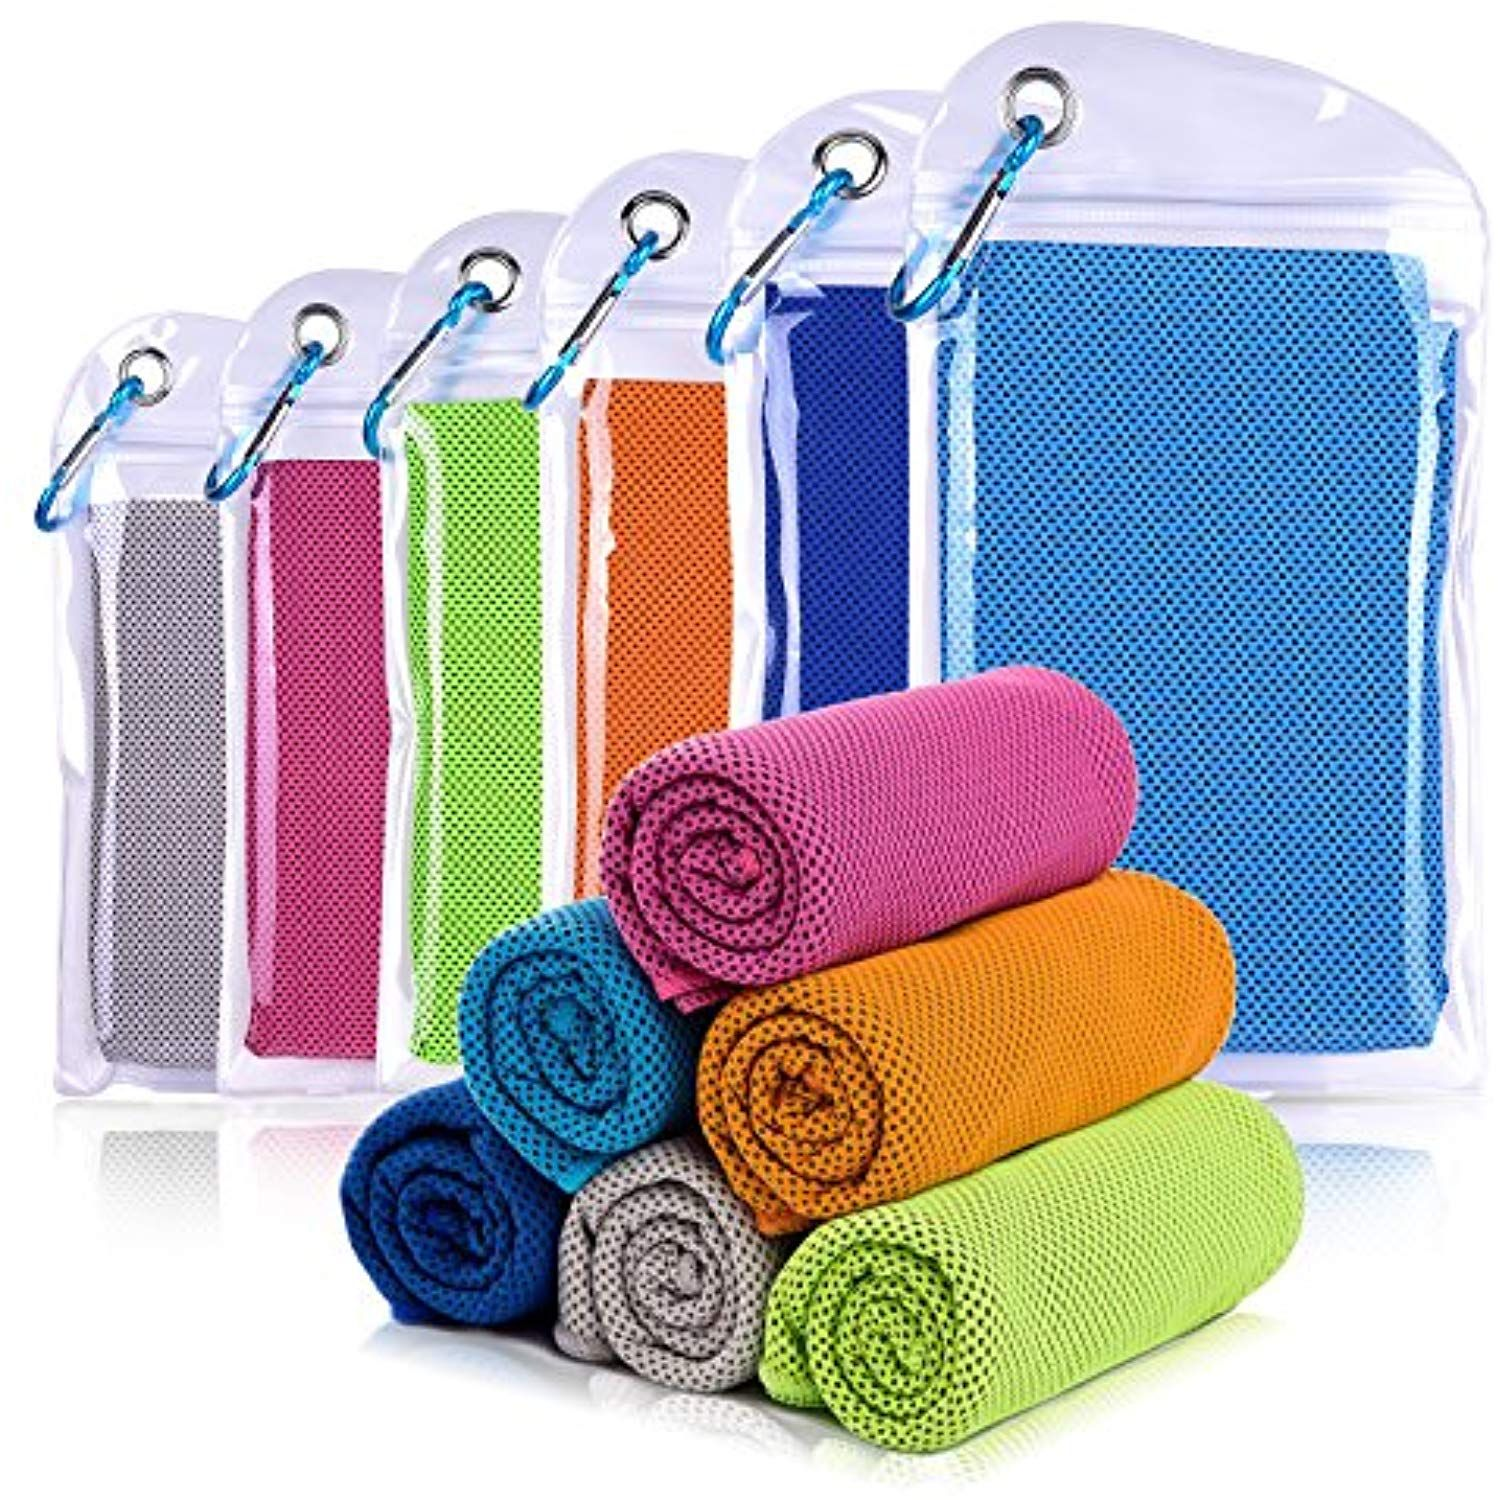 Willceal Cooling Towel Cool Towel For Instant Cooling Reliefi œ40